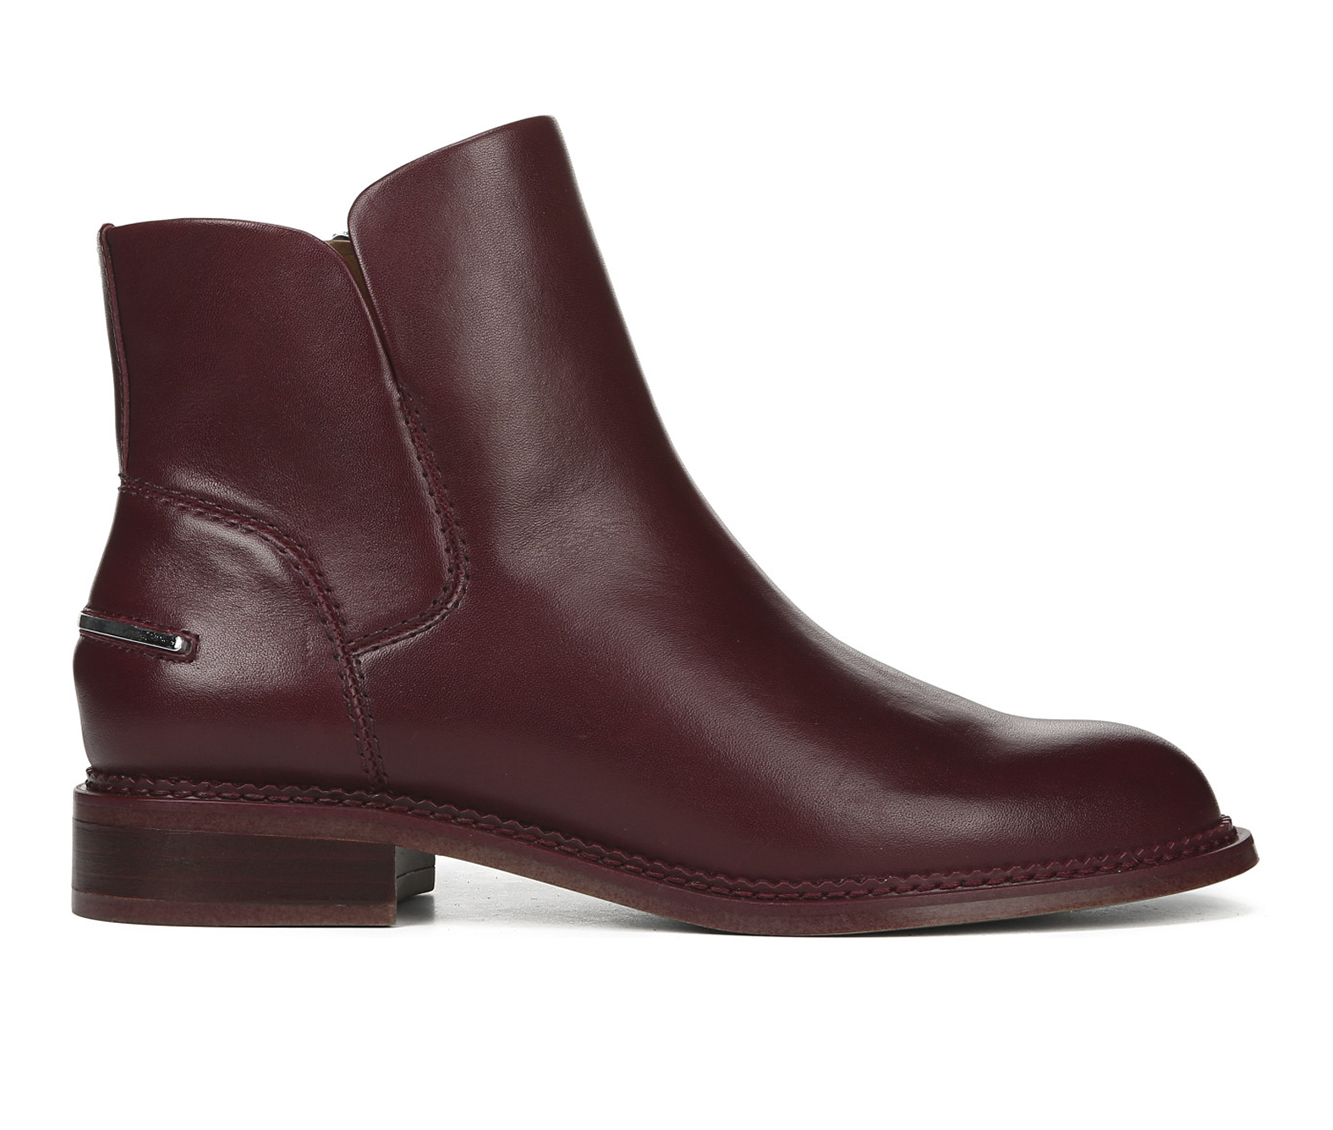 Franco Sarto Happily Women's Boots (Red - Leather)